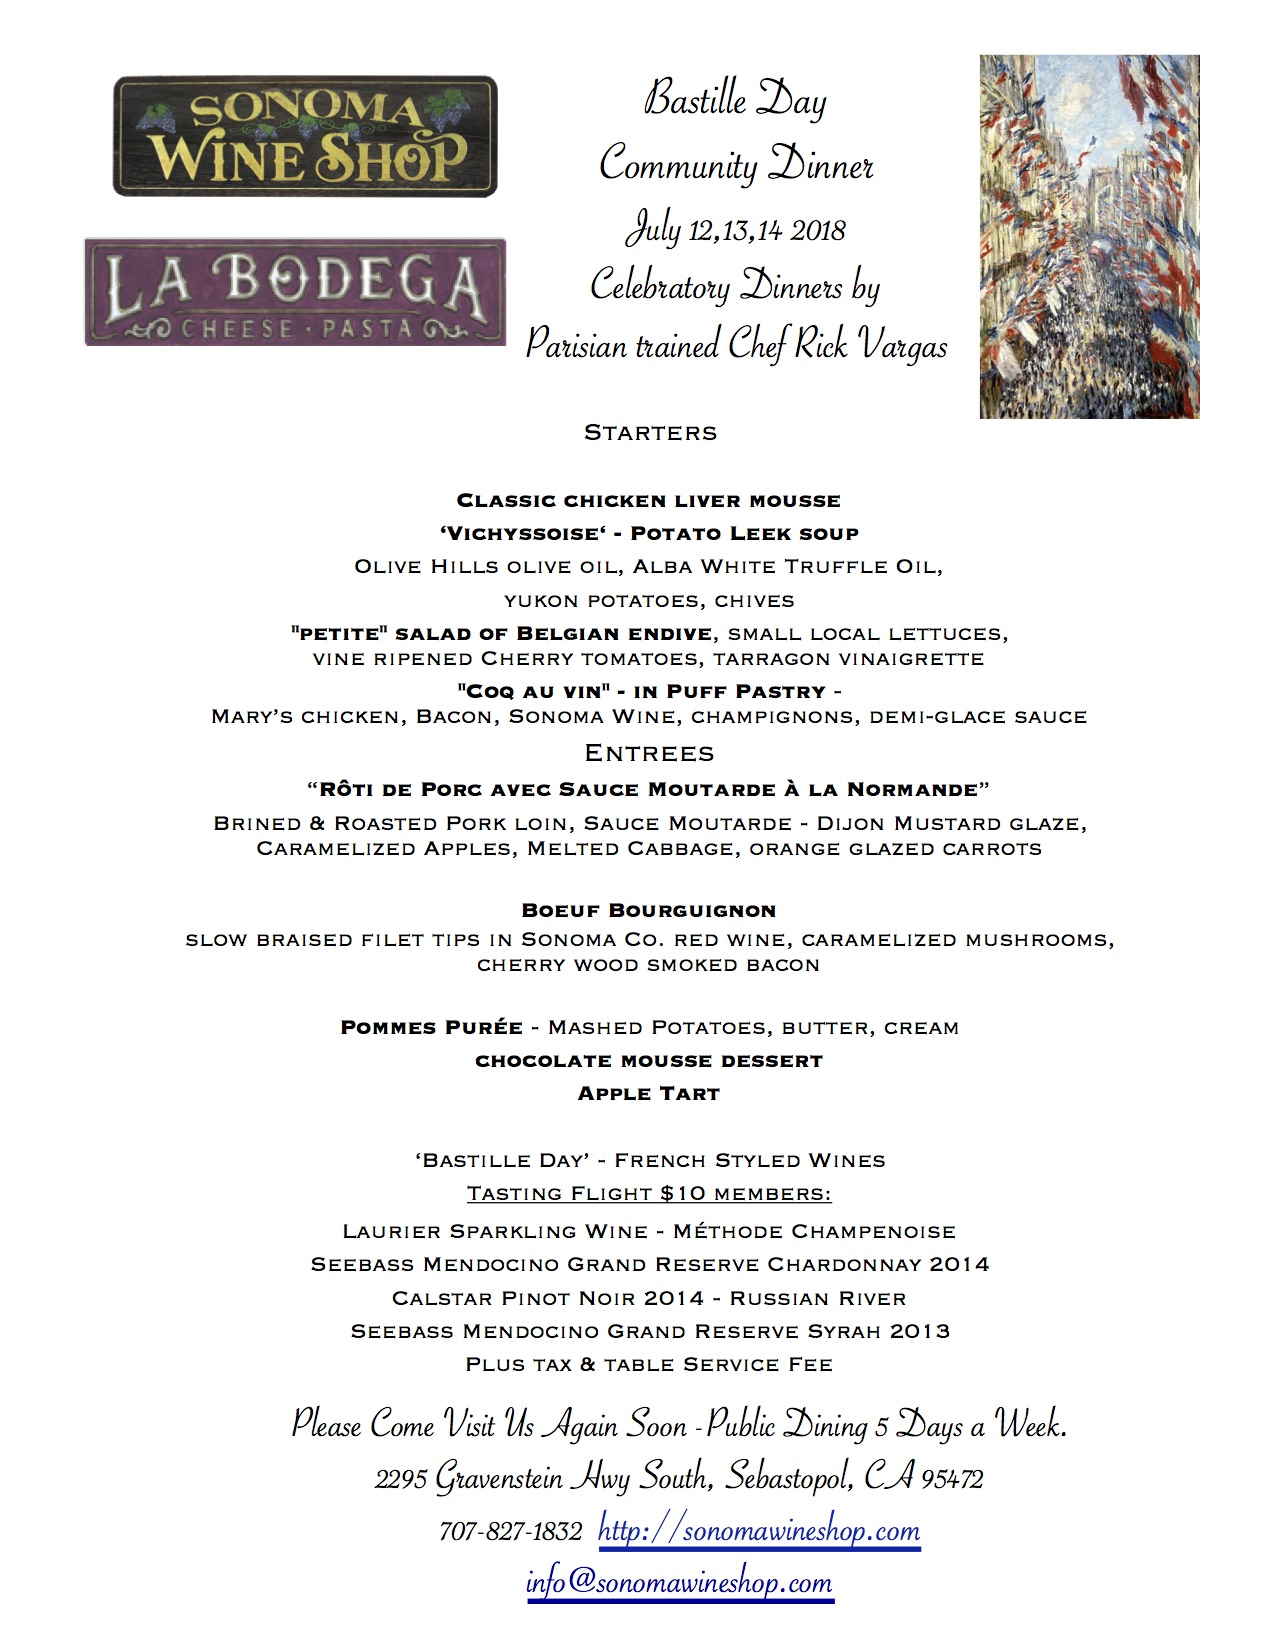 A special menu that would make anyone from France cry tears of joy.